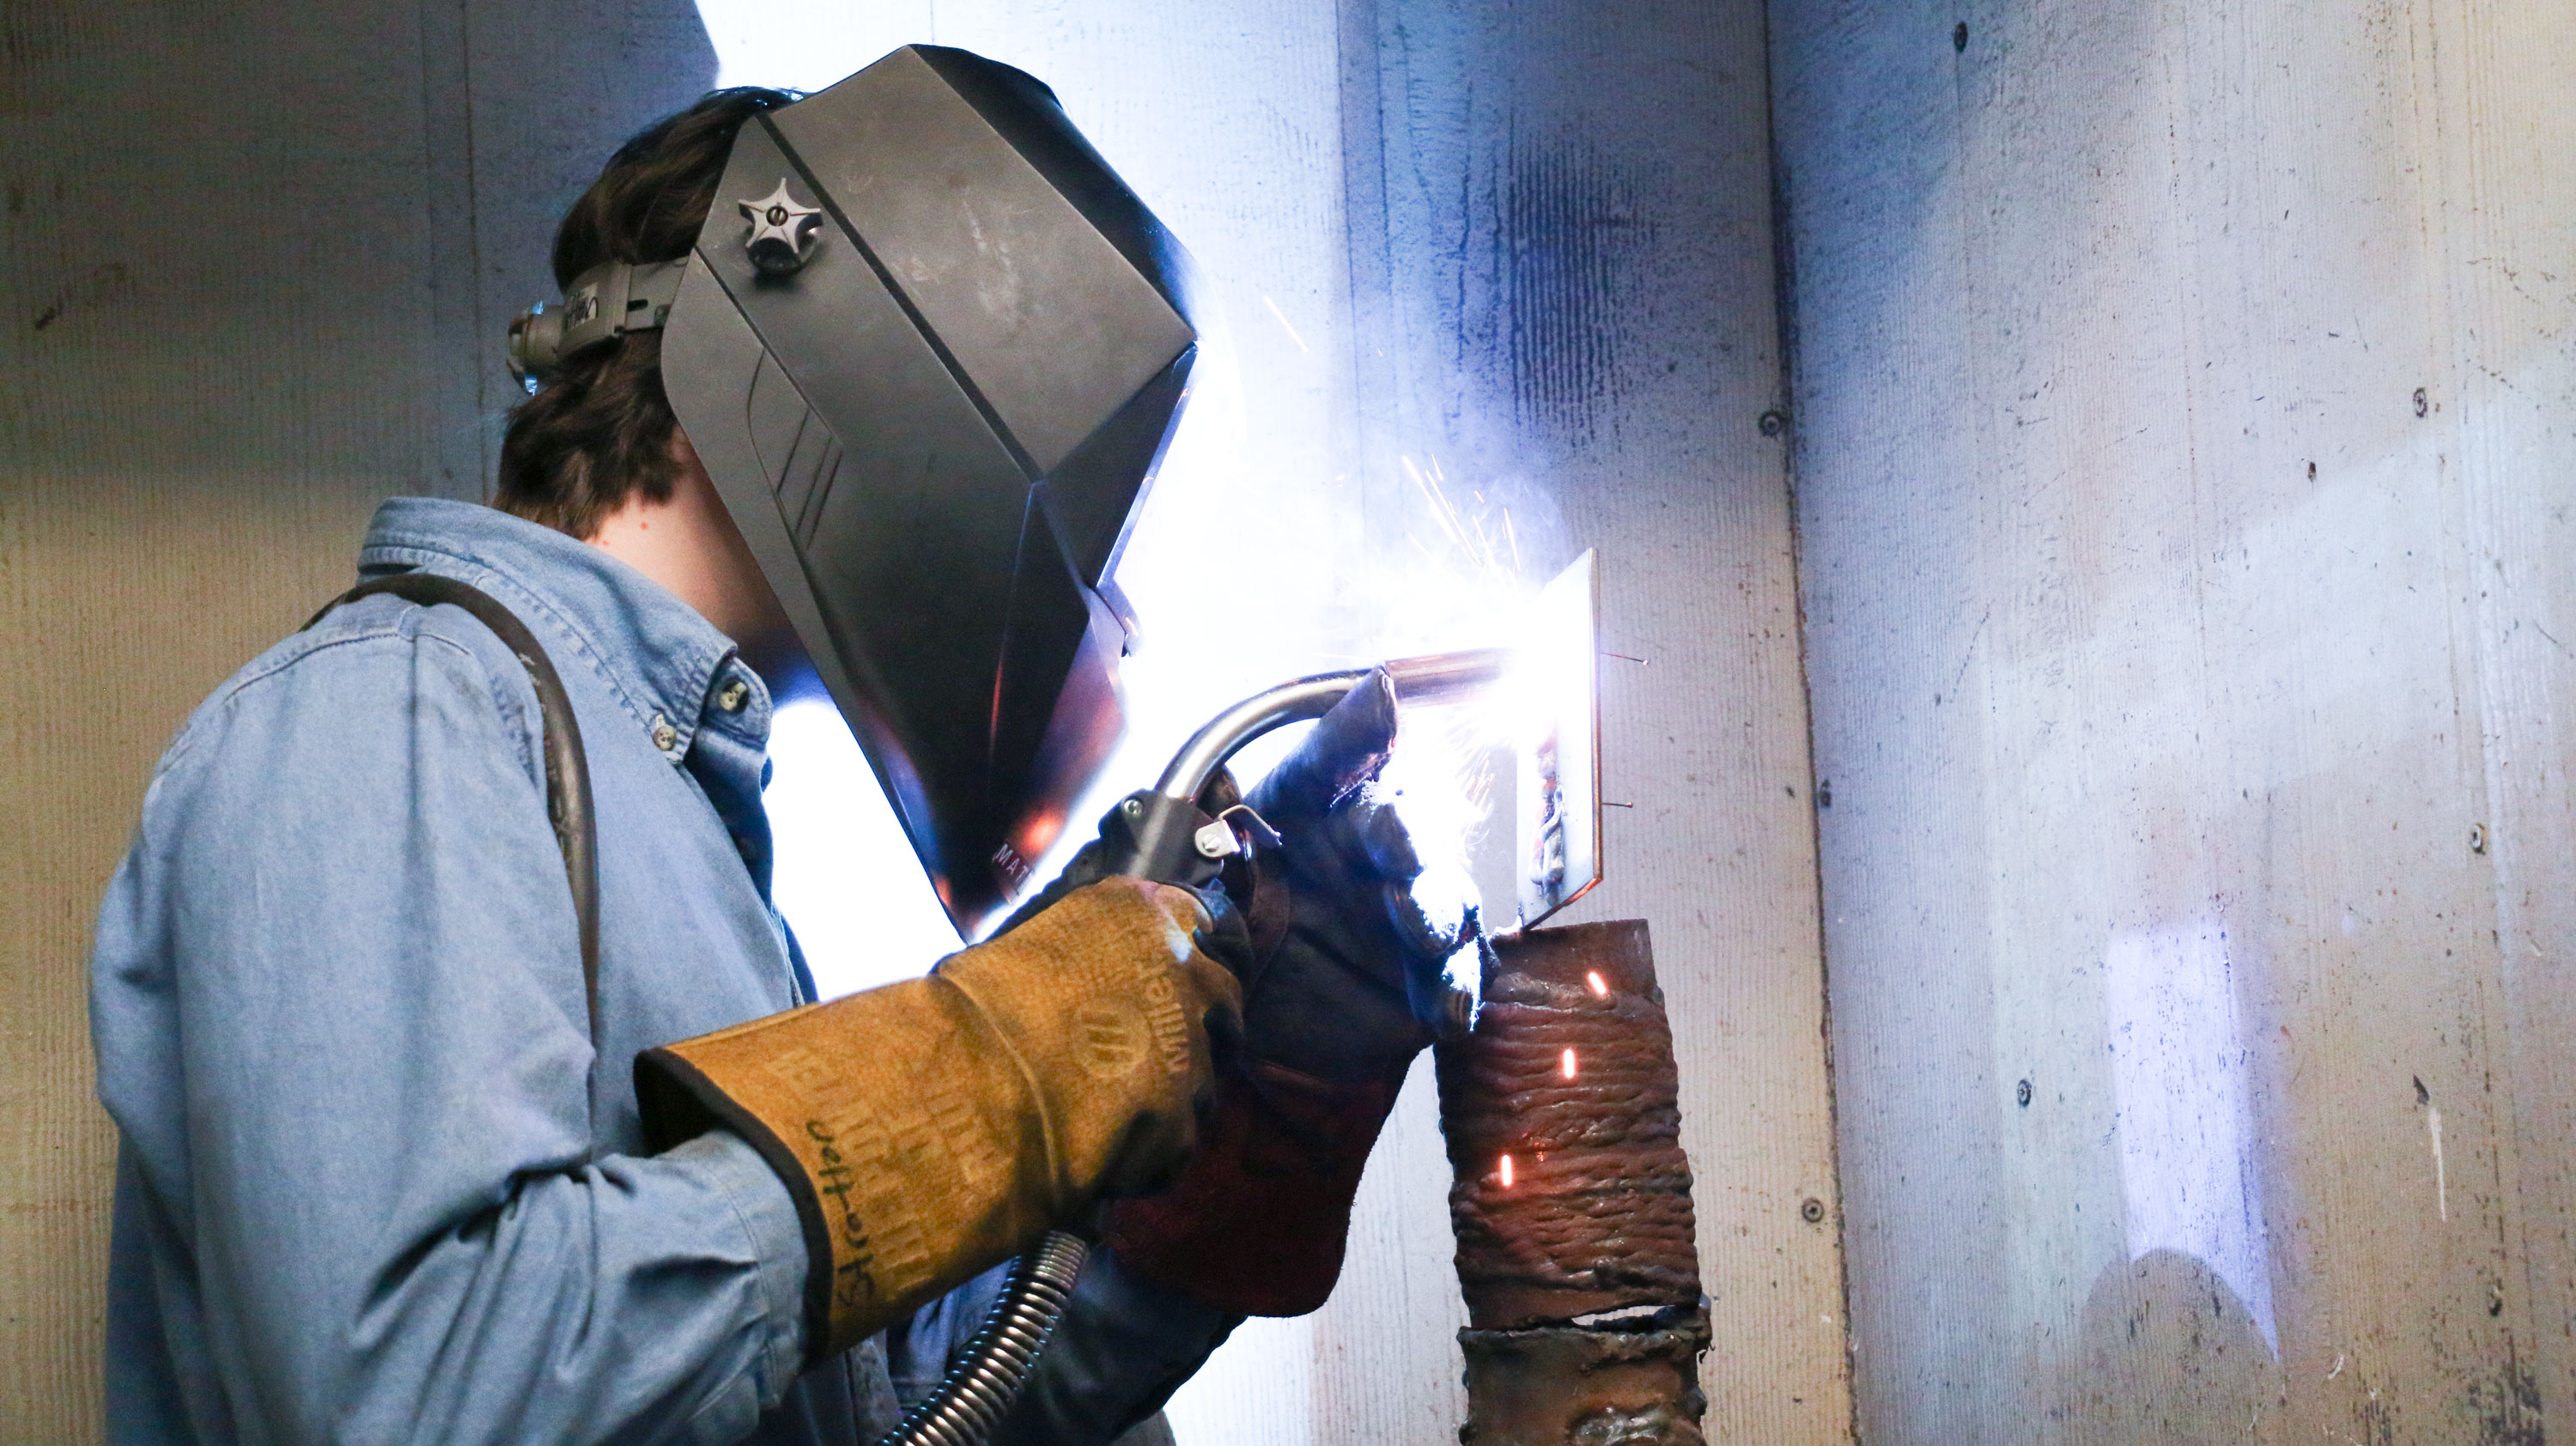 Maritime Welding School Learn Shipyard General Welding